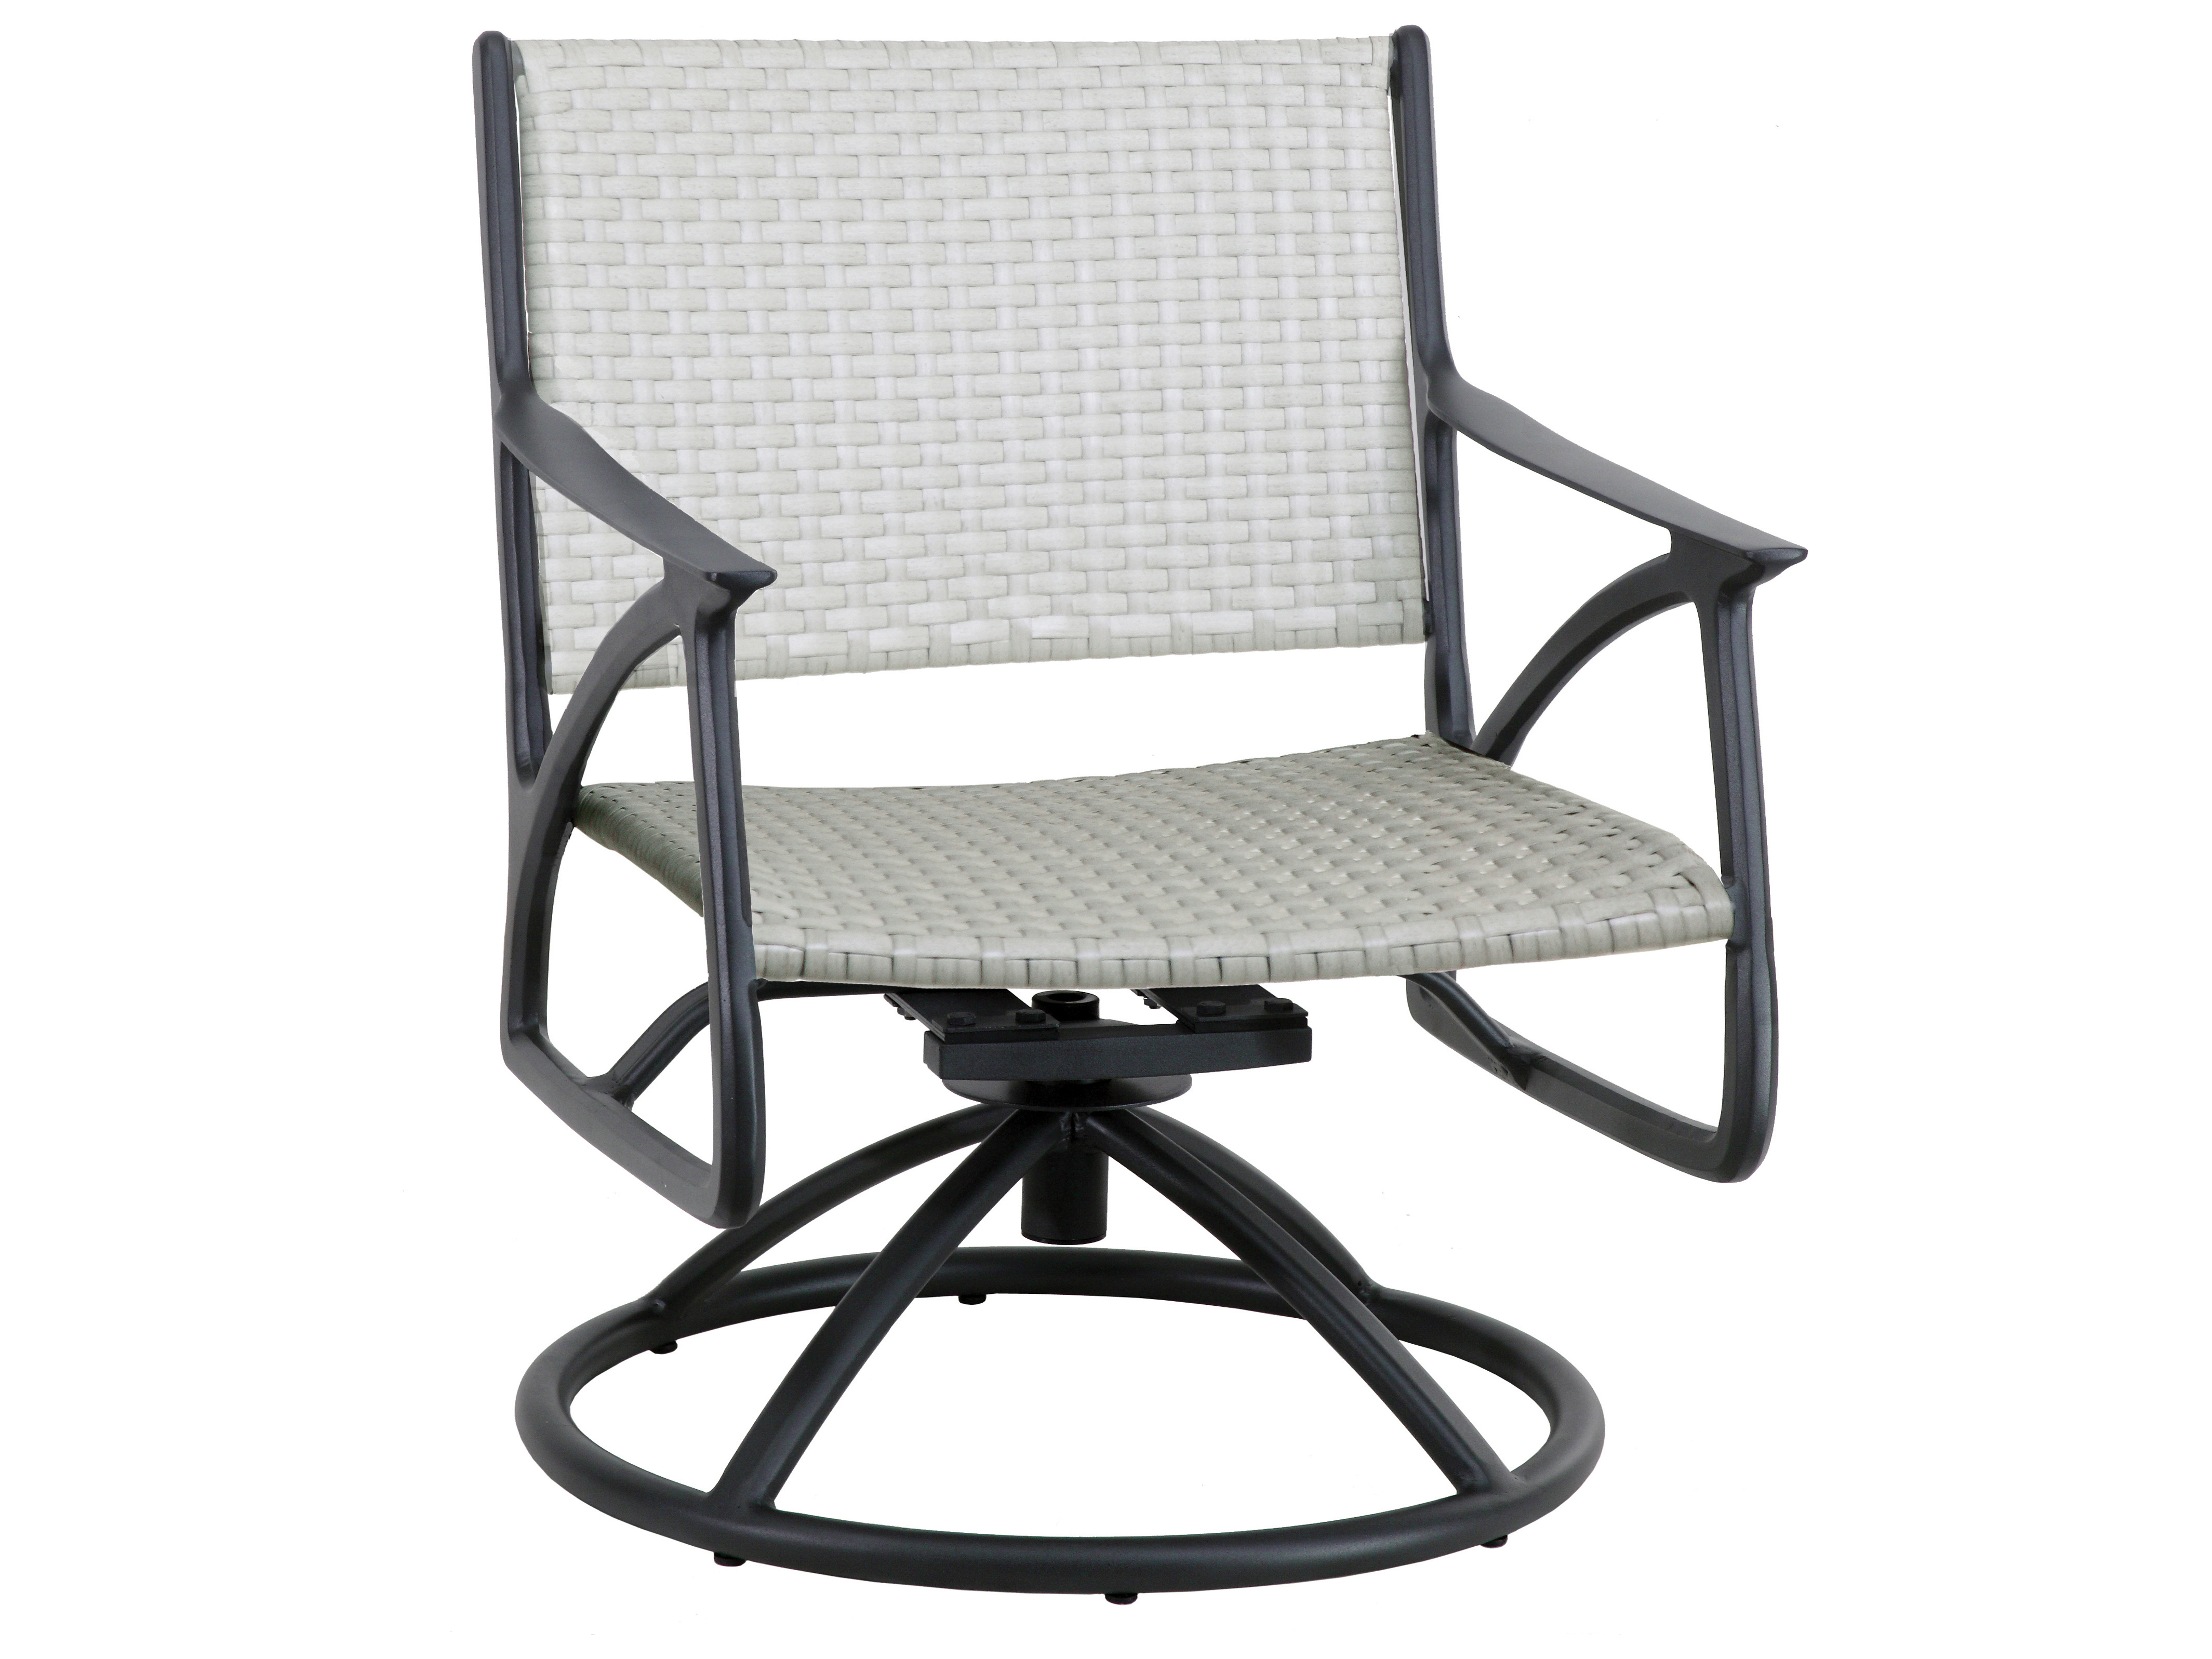 Amari Swivel Accent Chairs Intended For Recent Gensun Amari Woven Aluminum Wicker Swivel Rocking Lounge Chair (View 13 of 20)